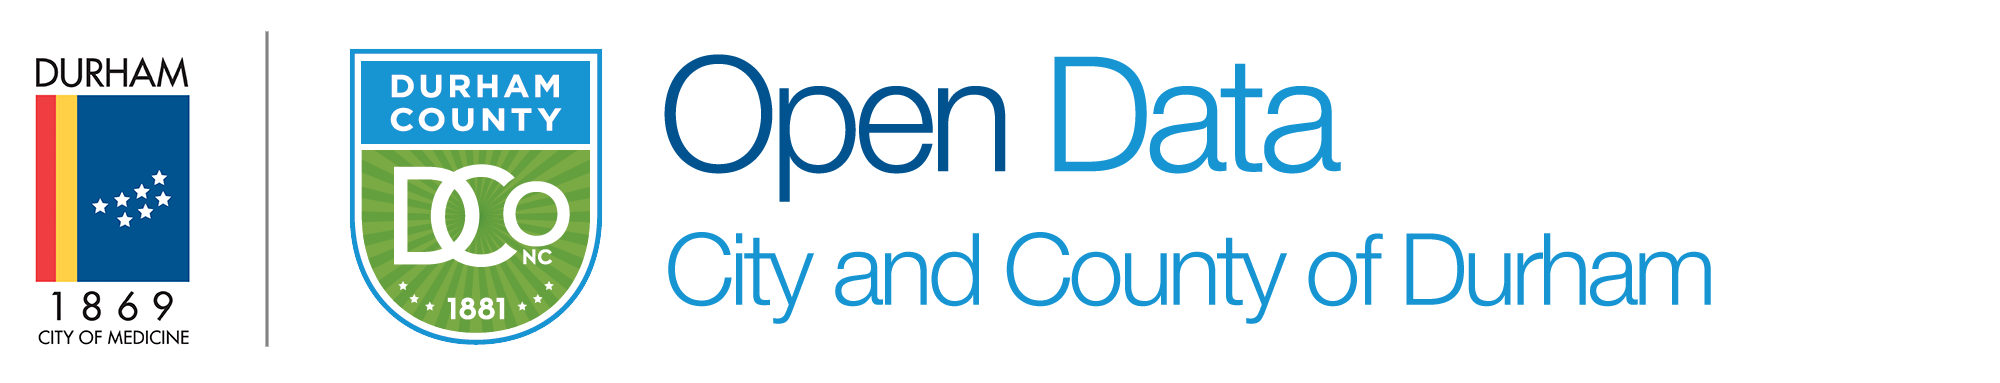 Durham Open Data